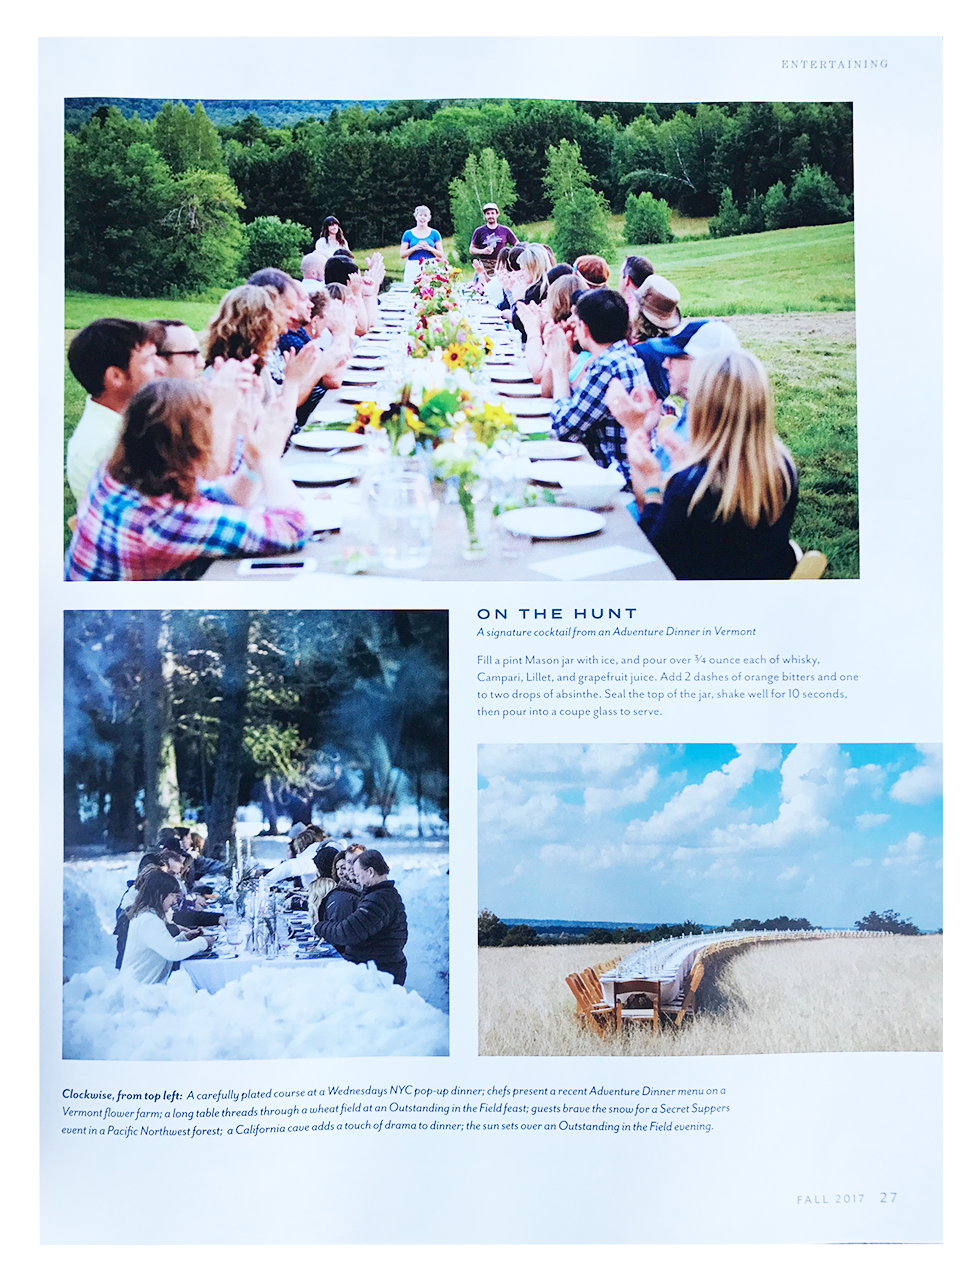 Stitchdown Farm Adventure Dinner Sift Magazine Fall 2017